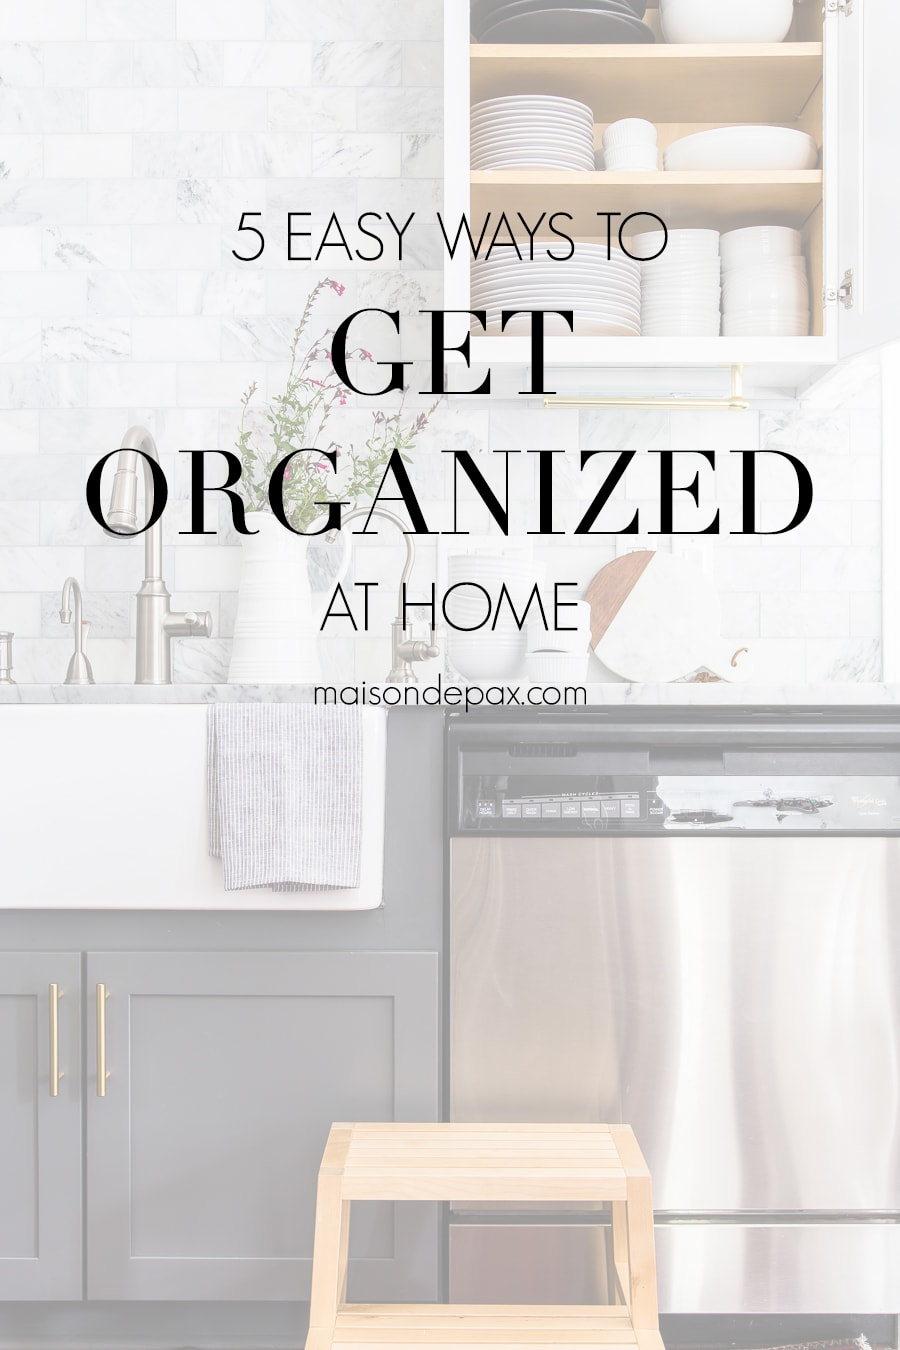 organized kitchen cabinet with overlay: 5 easy ways to get organized at home | Maison de Pax